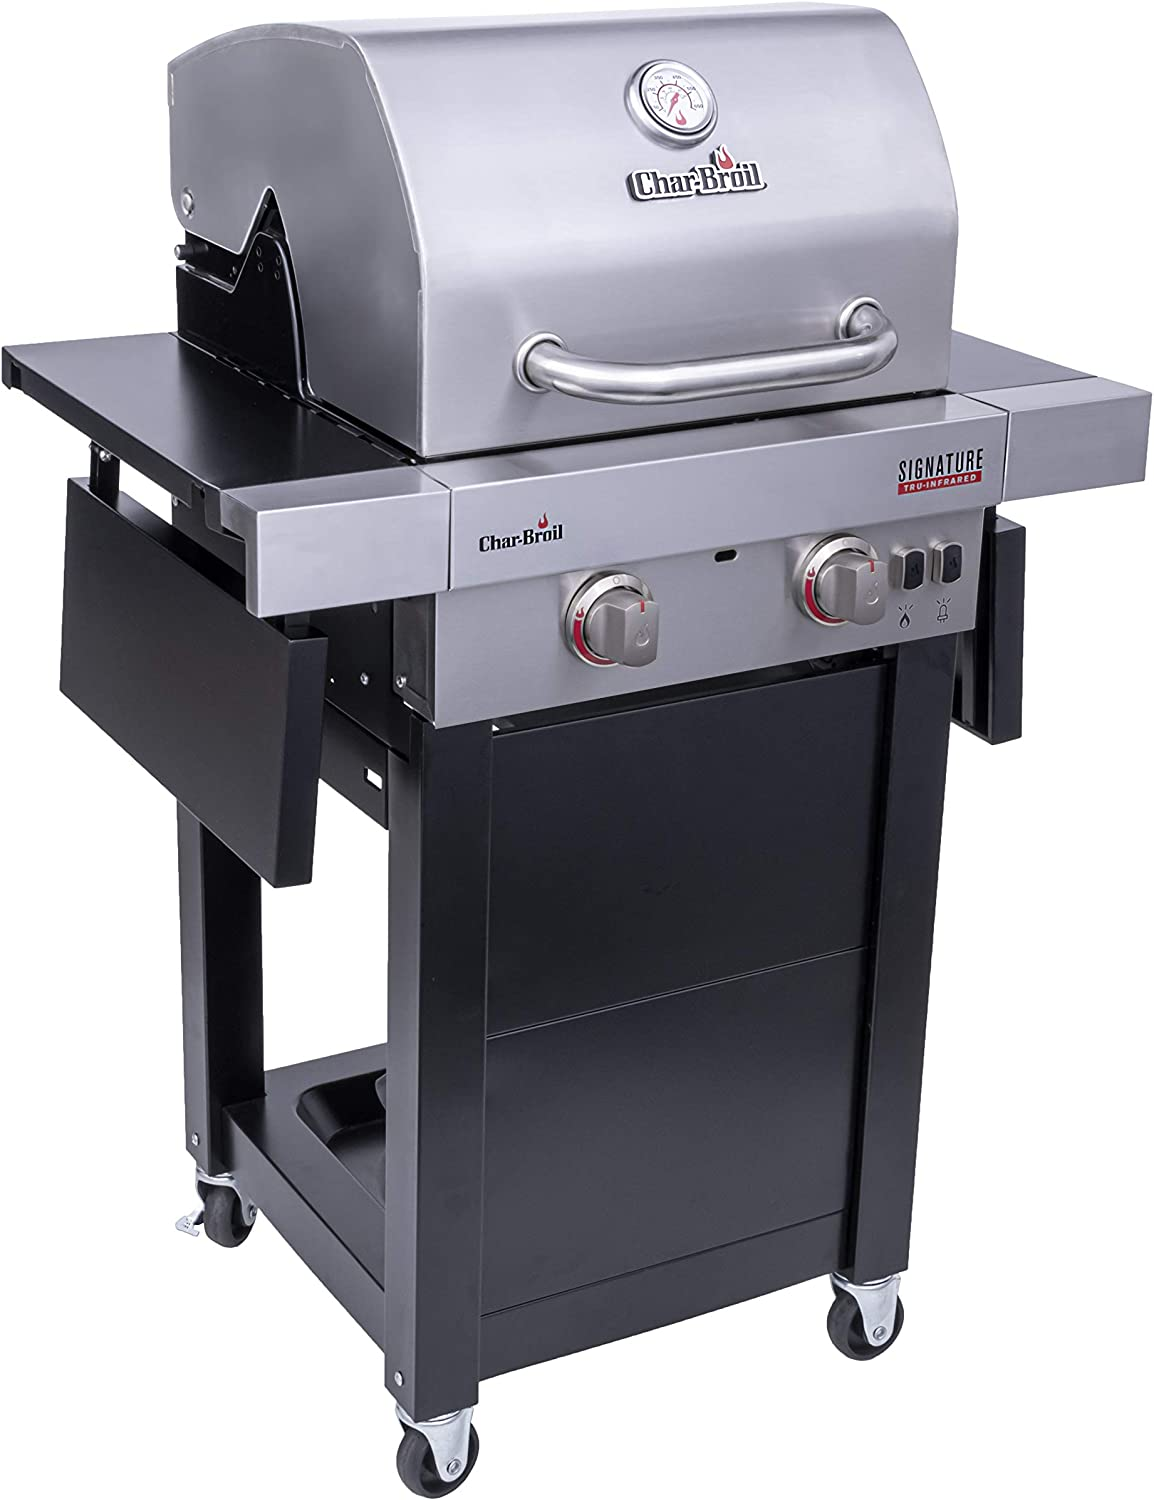 Char-Broil 463632320 Signature TRU-Infrared 2-Burner Cart Style Gas Grill, Stainless/Black